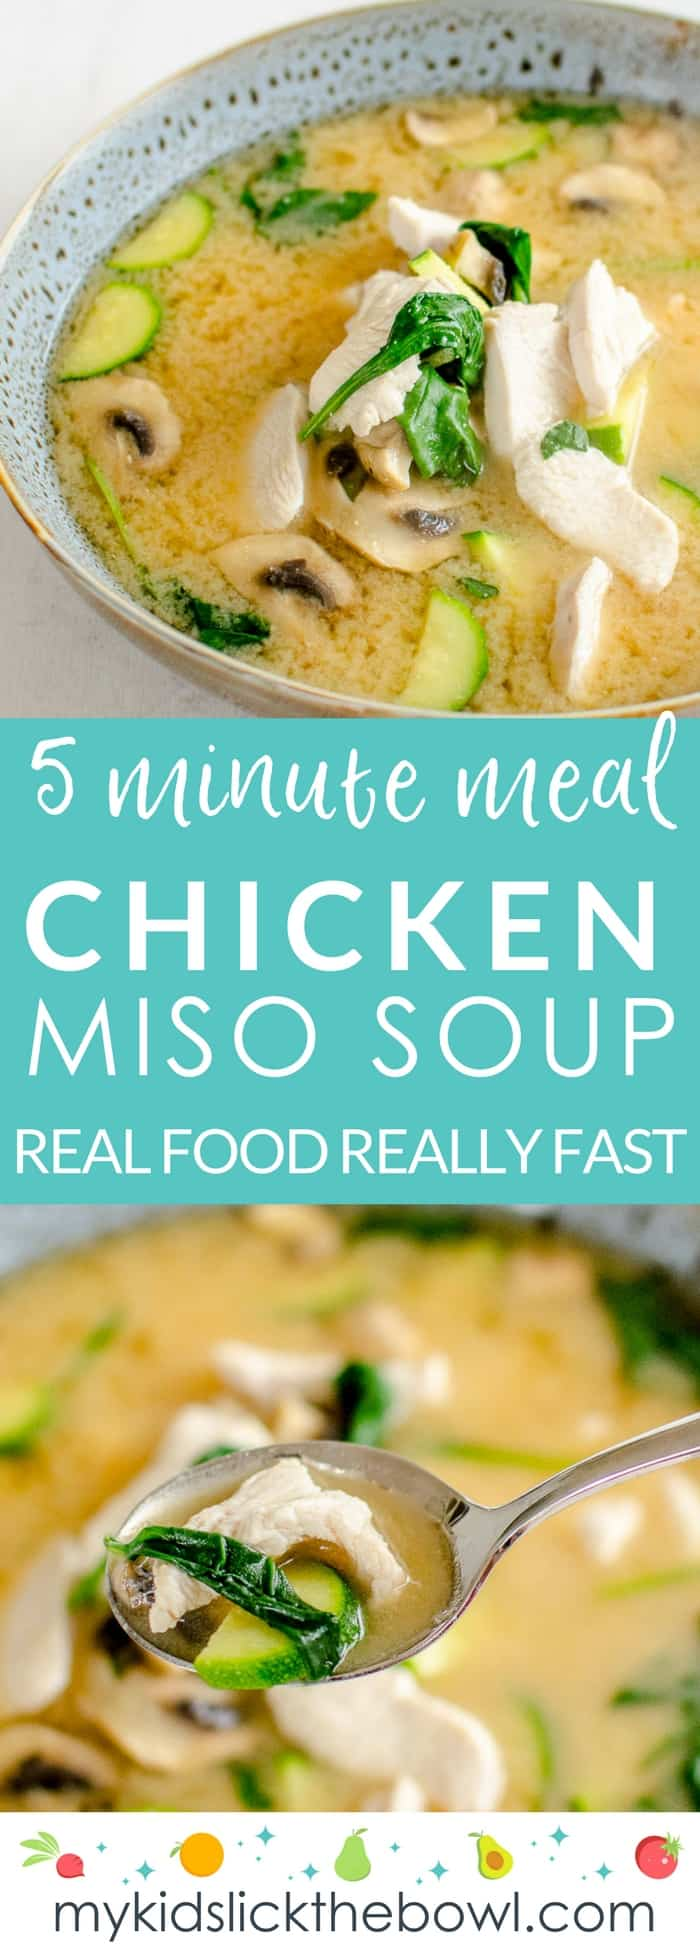 5-minute meals chicken miso soup, a super quick healthy and easy recipe which is ready in 5 minutes, perfect for busy moms